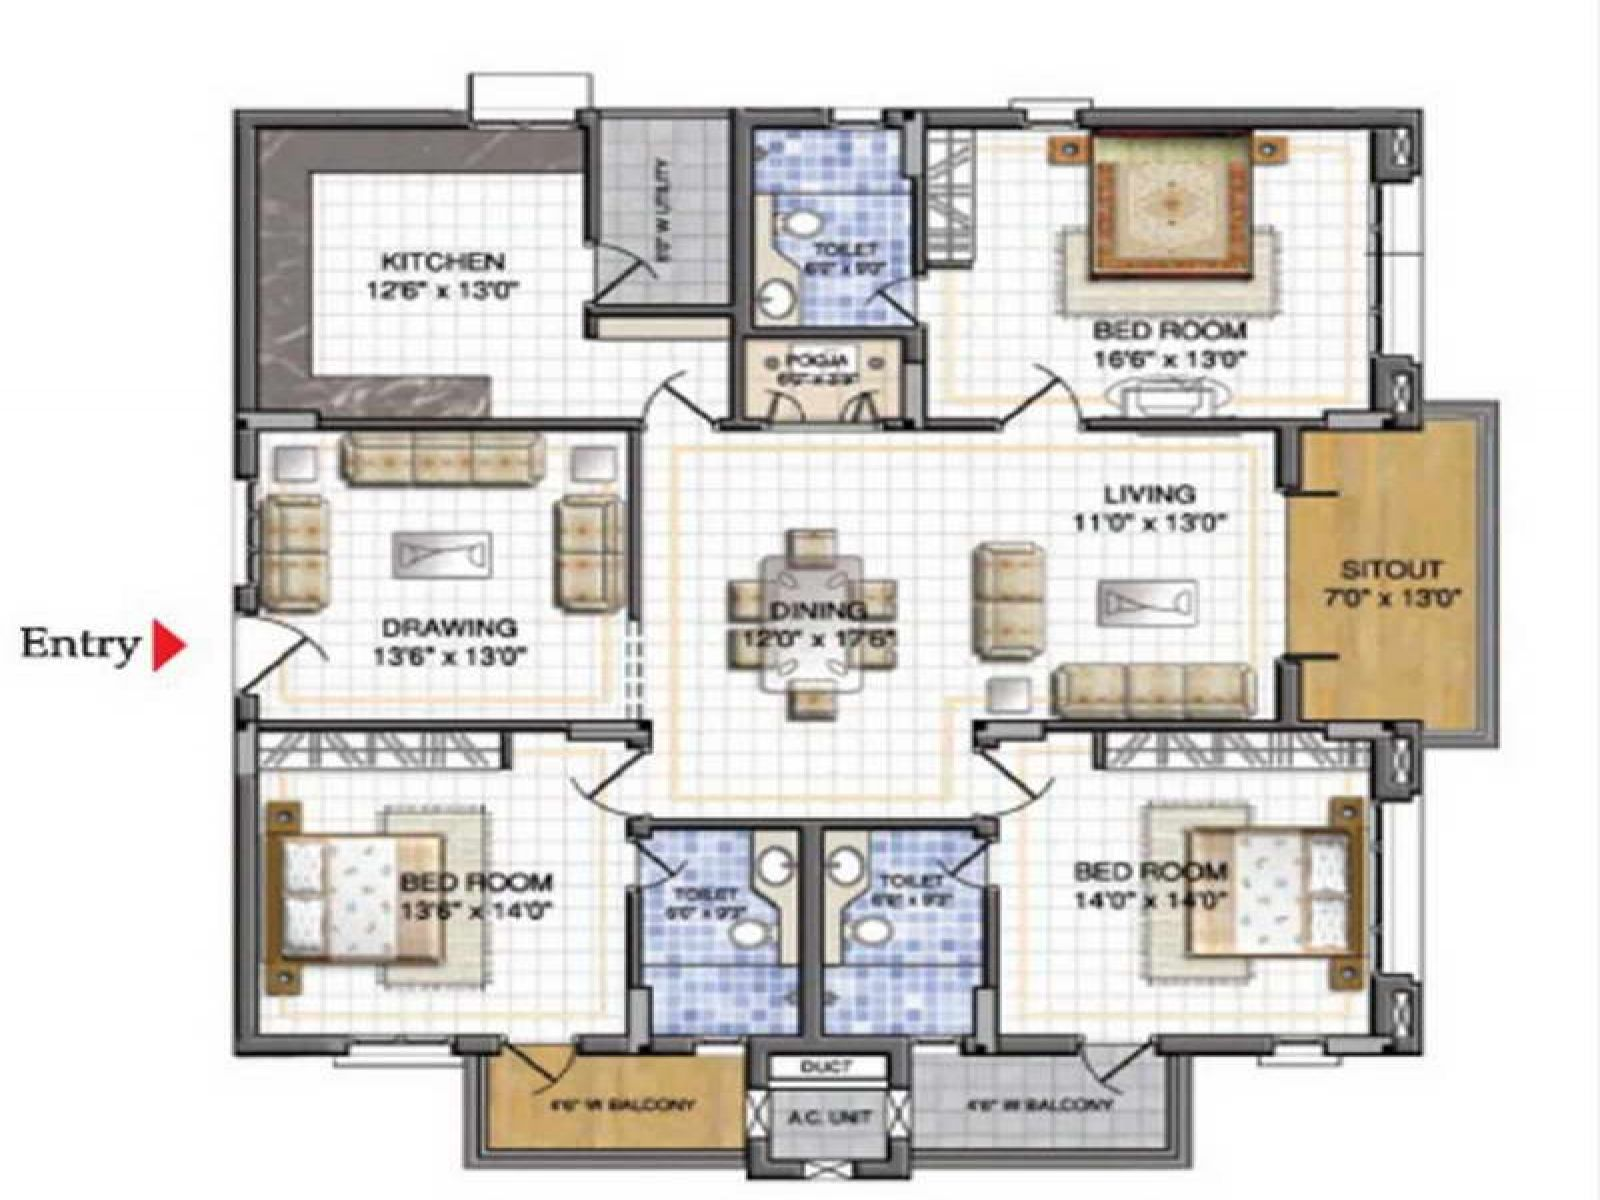 Home Plan Design Online Plans Beauteous Plan Design Software Windows Floor Free Online Terms Copyright . Inspiration